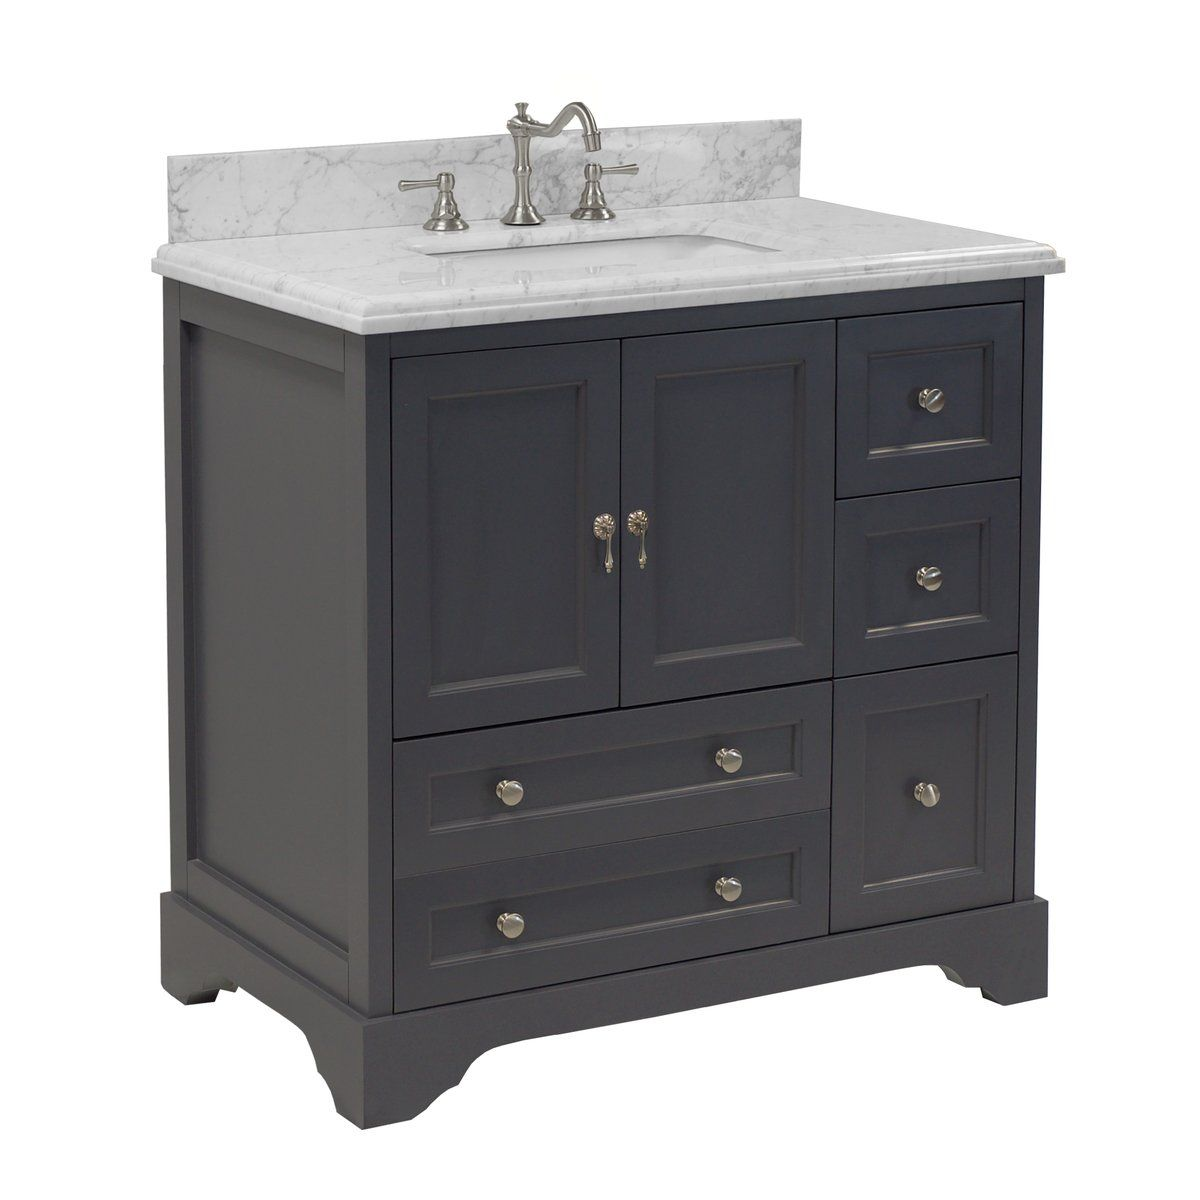 Madison 36 Inch Vanity With Carrara Marble Top In 2020 Single Bathroom Vanity Bathroom Vanity Vanity